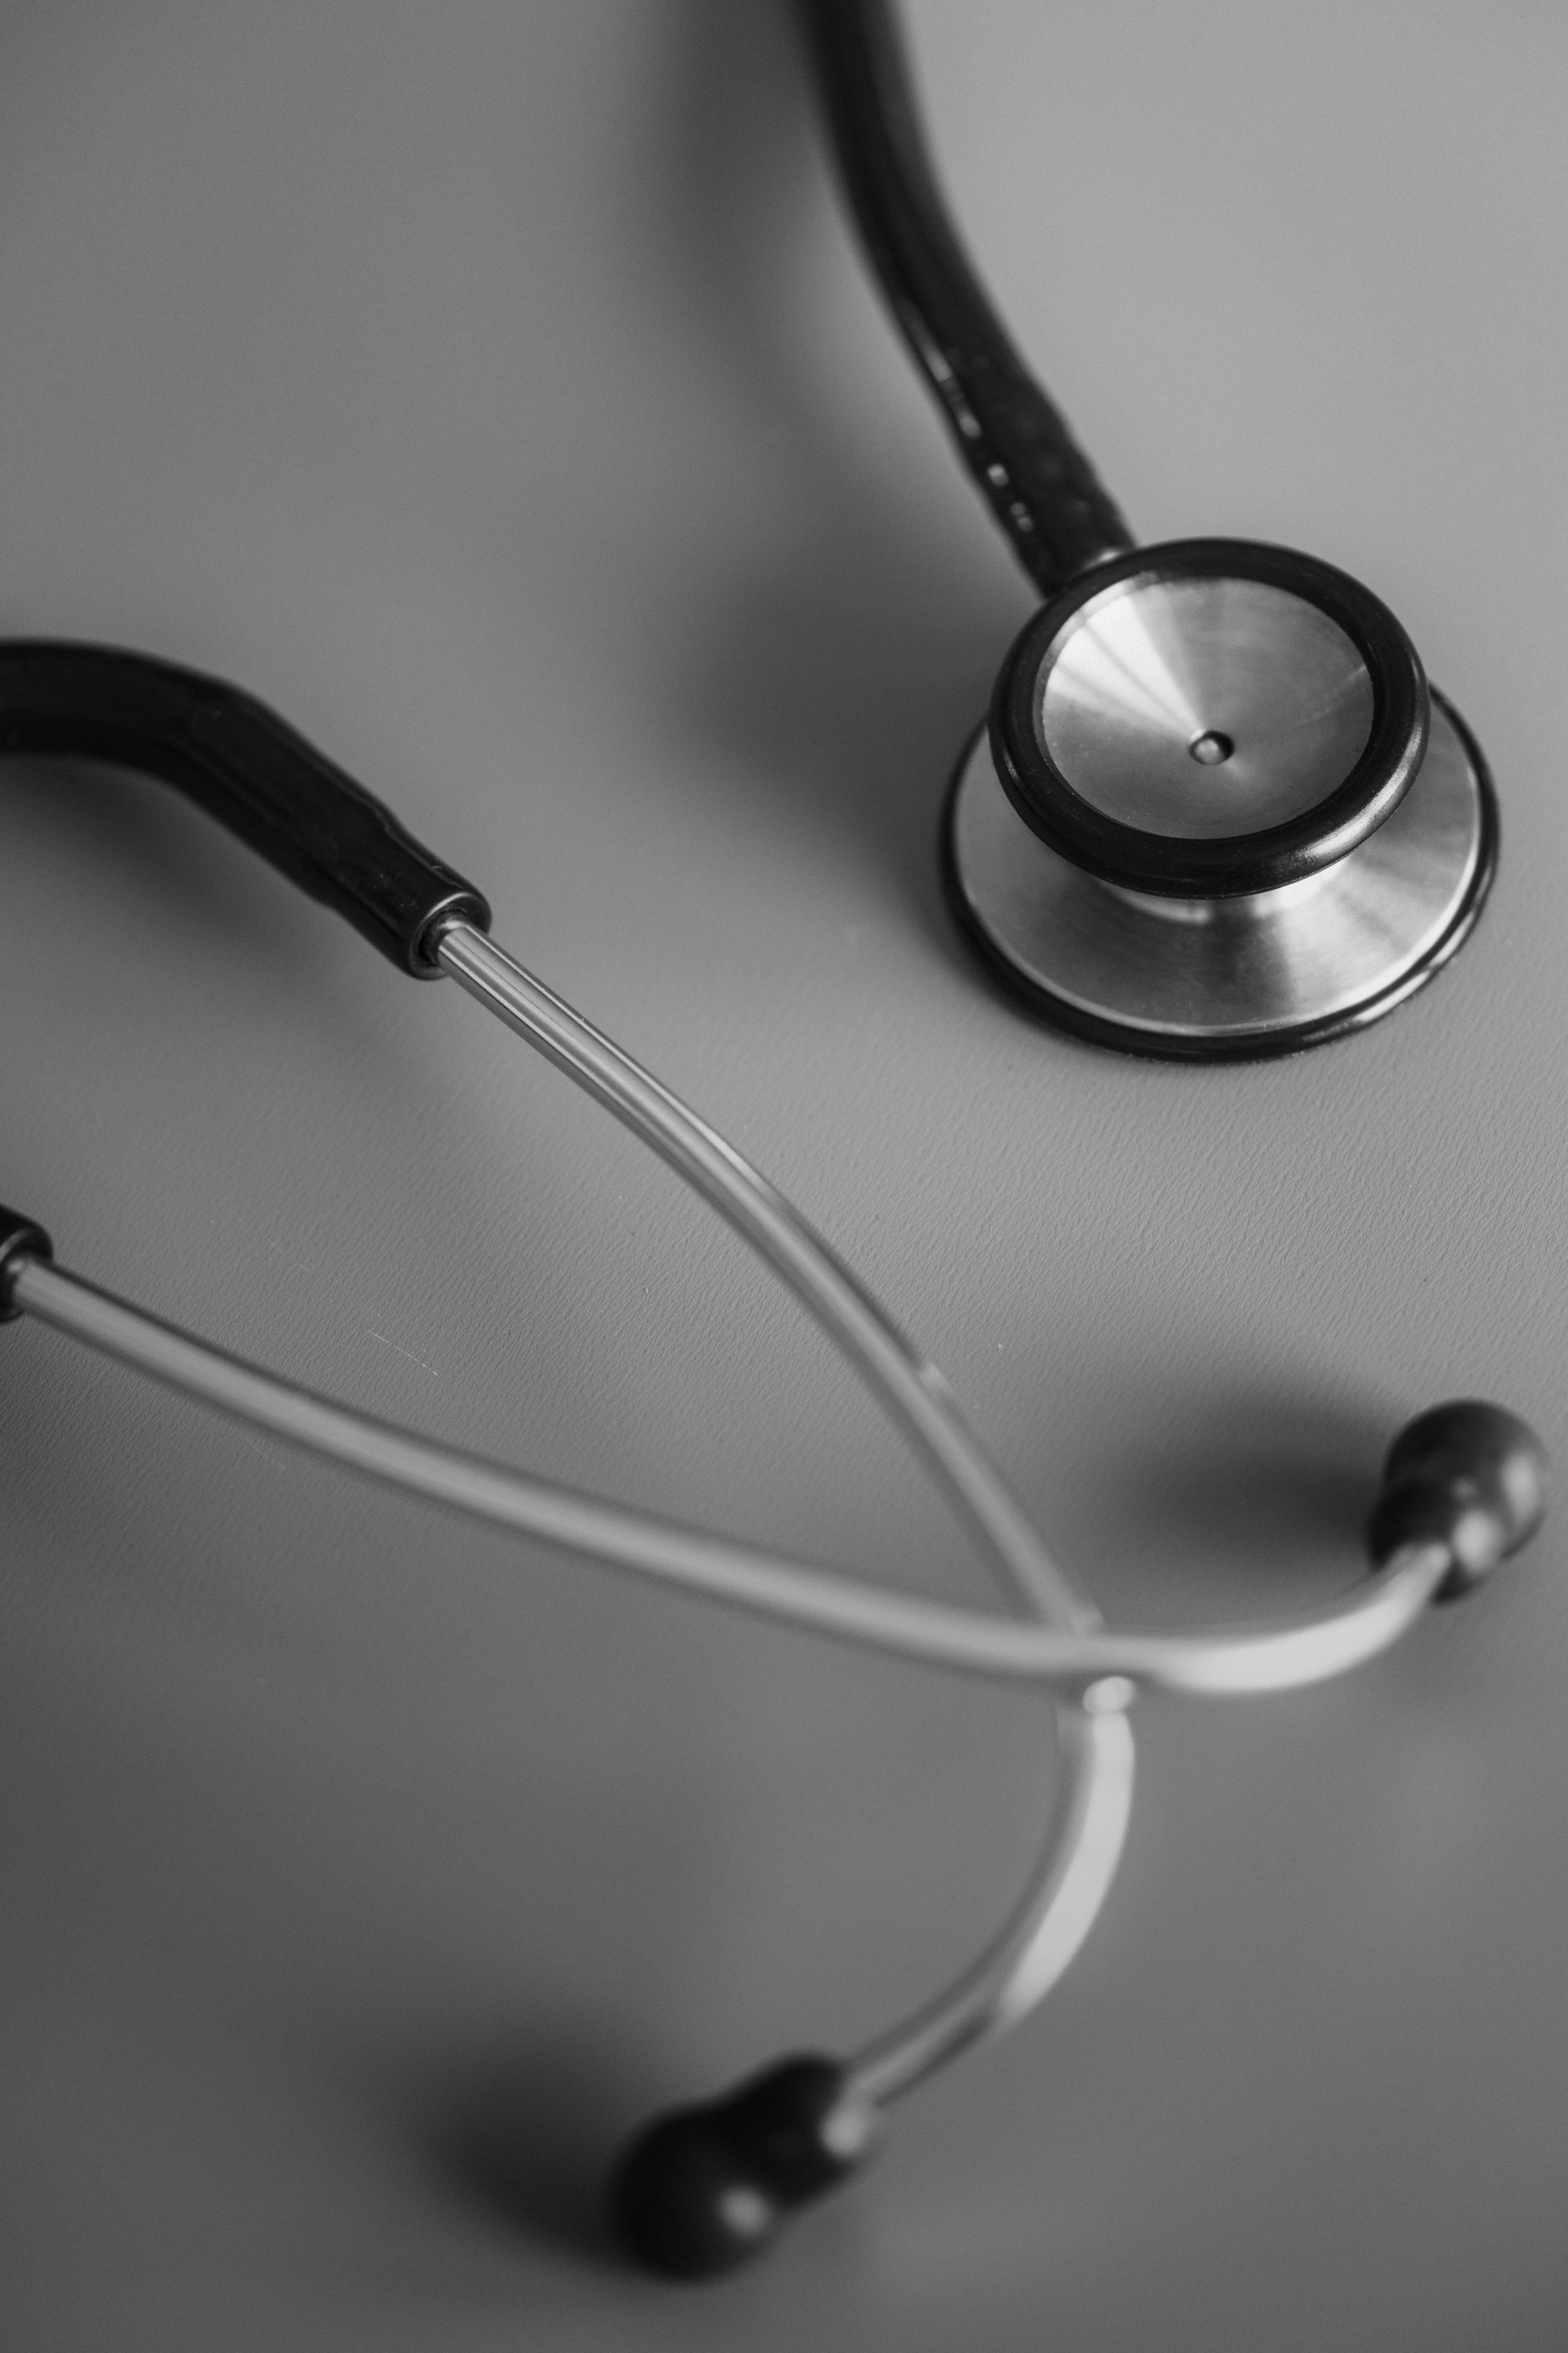 Stethoscopes Contain Harmful Bacteria Even When 'Clean,' Study Finds